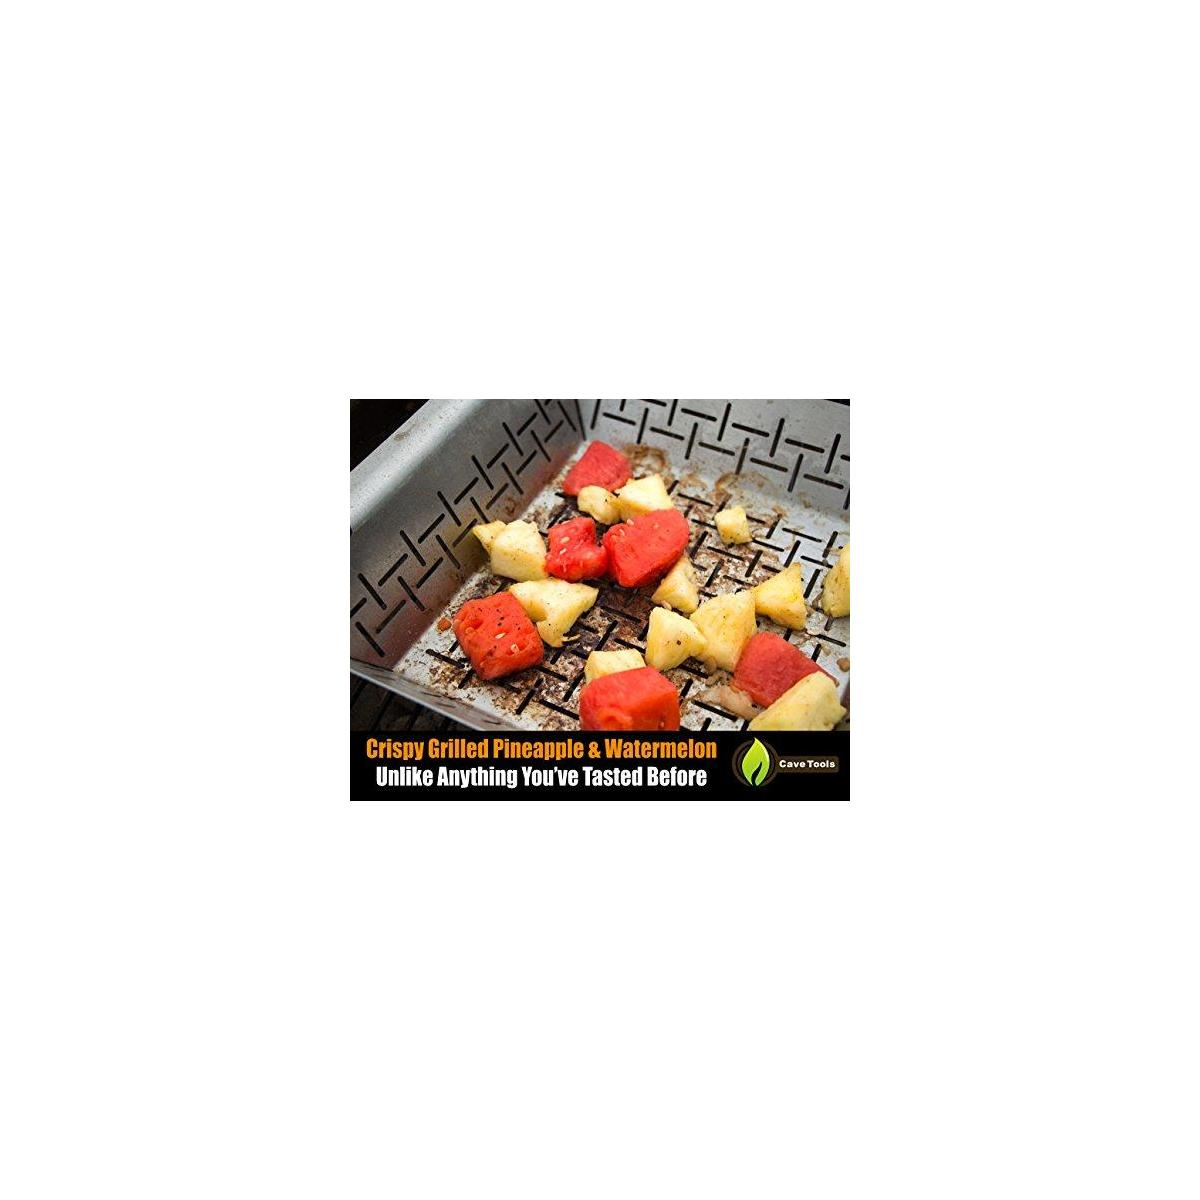 Cave Tools BBQ Skewers Set (10) Extra Long + Vegetable Grill Basket - Dishwasher Safe Stainless Steel - Large Non Stick Grid Pan for Veggies & Meat - Best Barbecue Wok Topper Accessories Gift for Dad